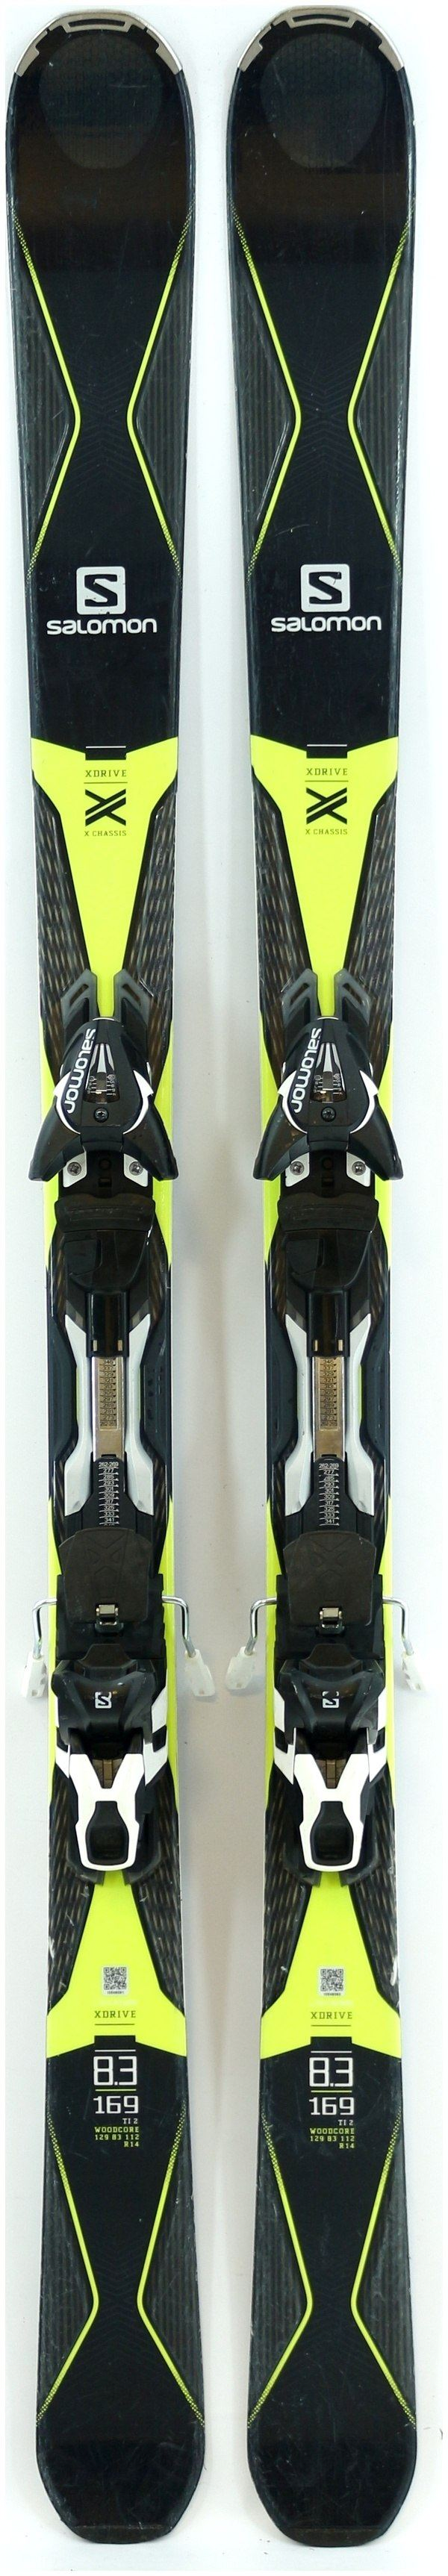 Salomon X drive 169cm Demo Ski W XT12 bindings